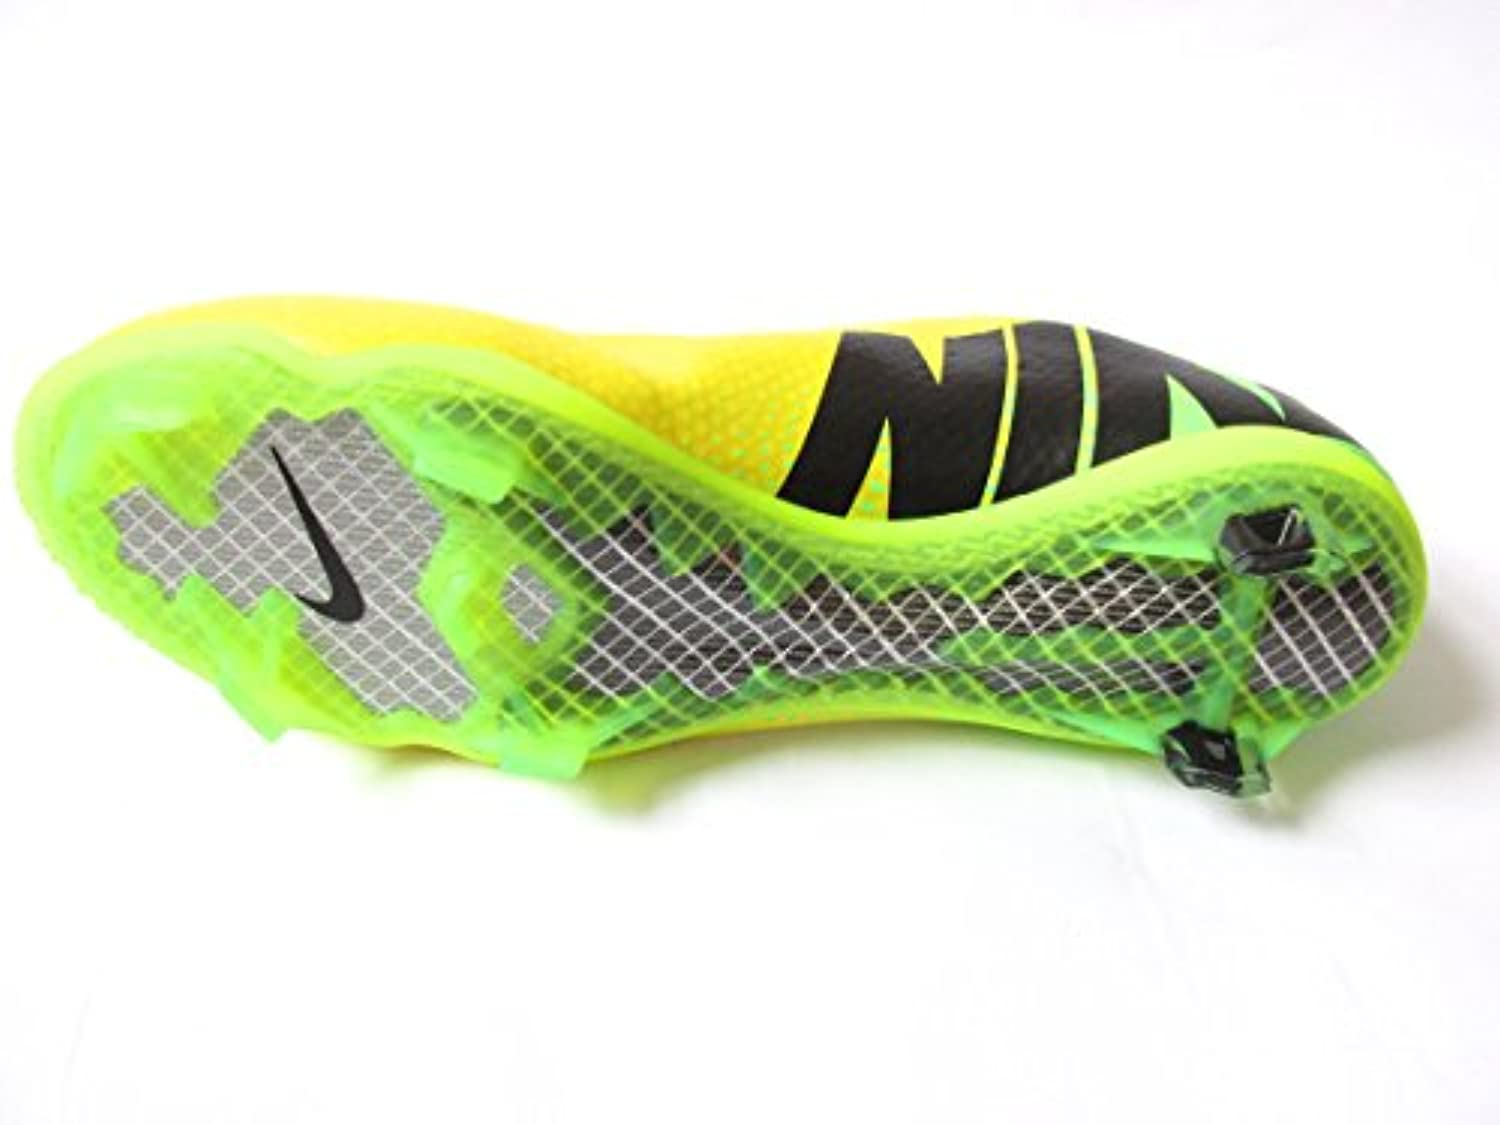 aacf7bf4bd79 ... free shipping nike mercurial vapor ix fg mens football boots 555605 704  soccer cleats firm ground